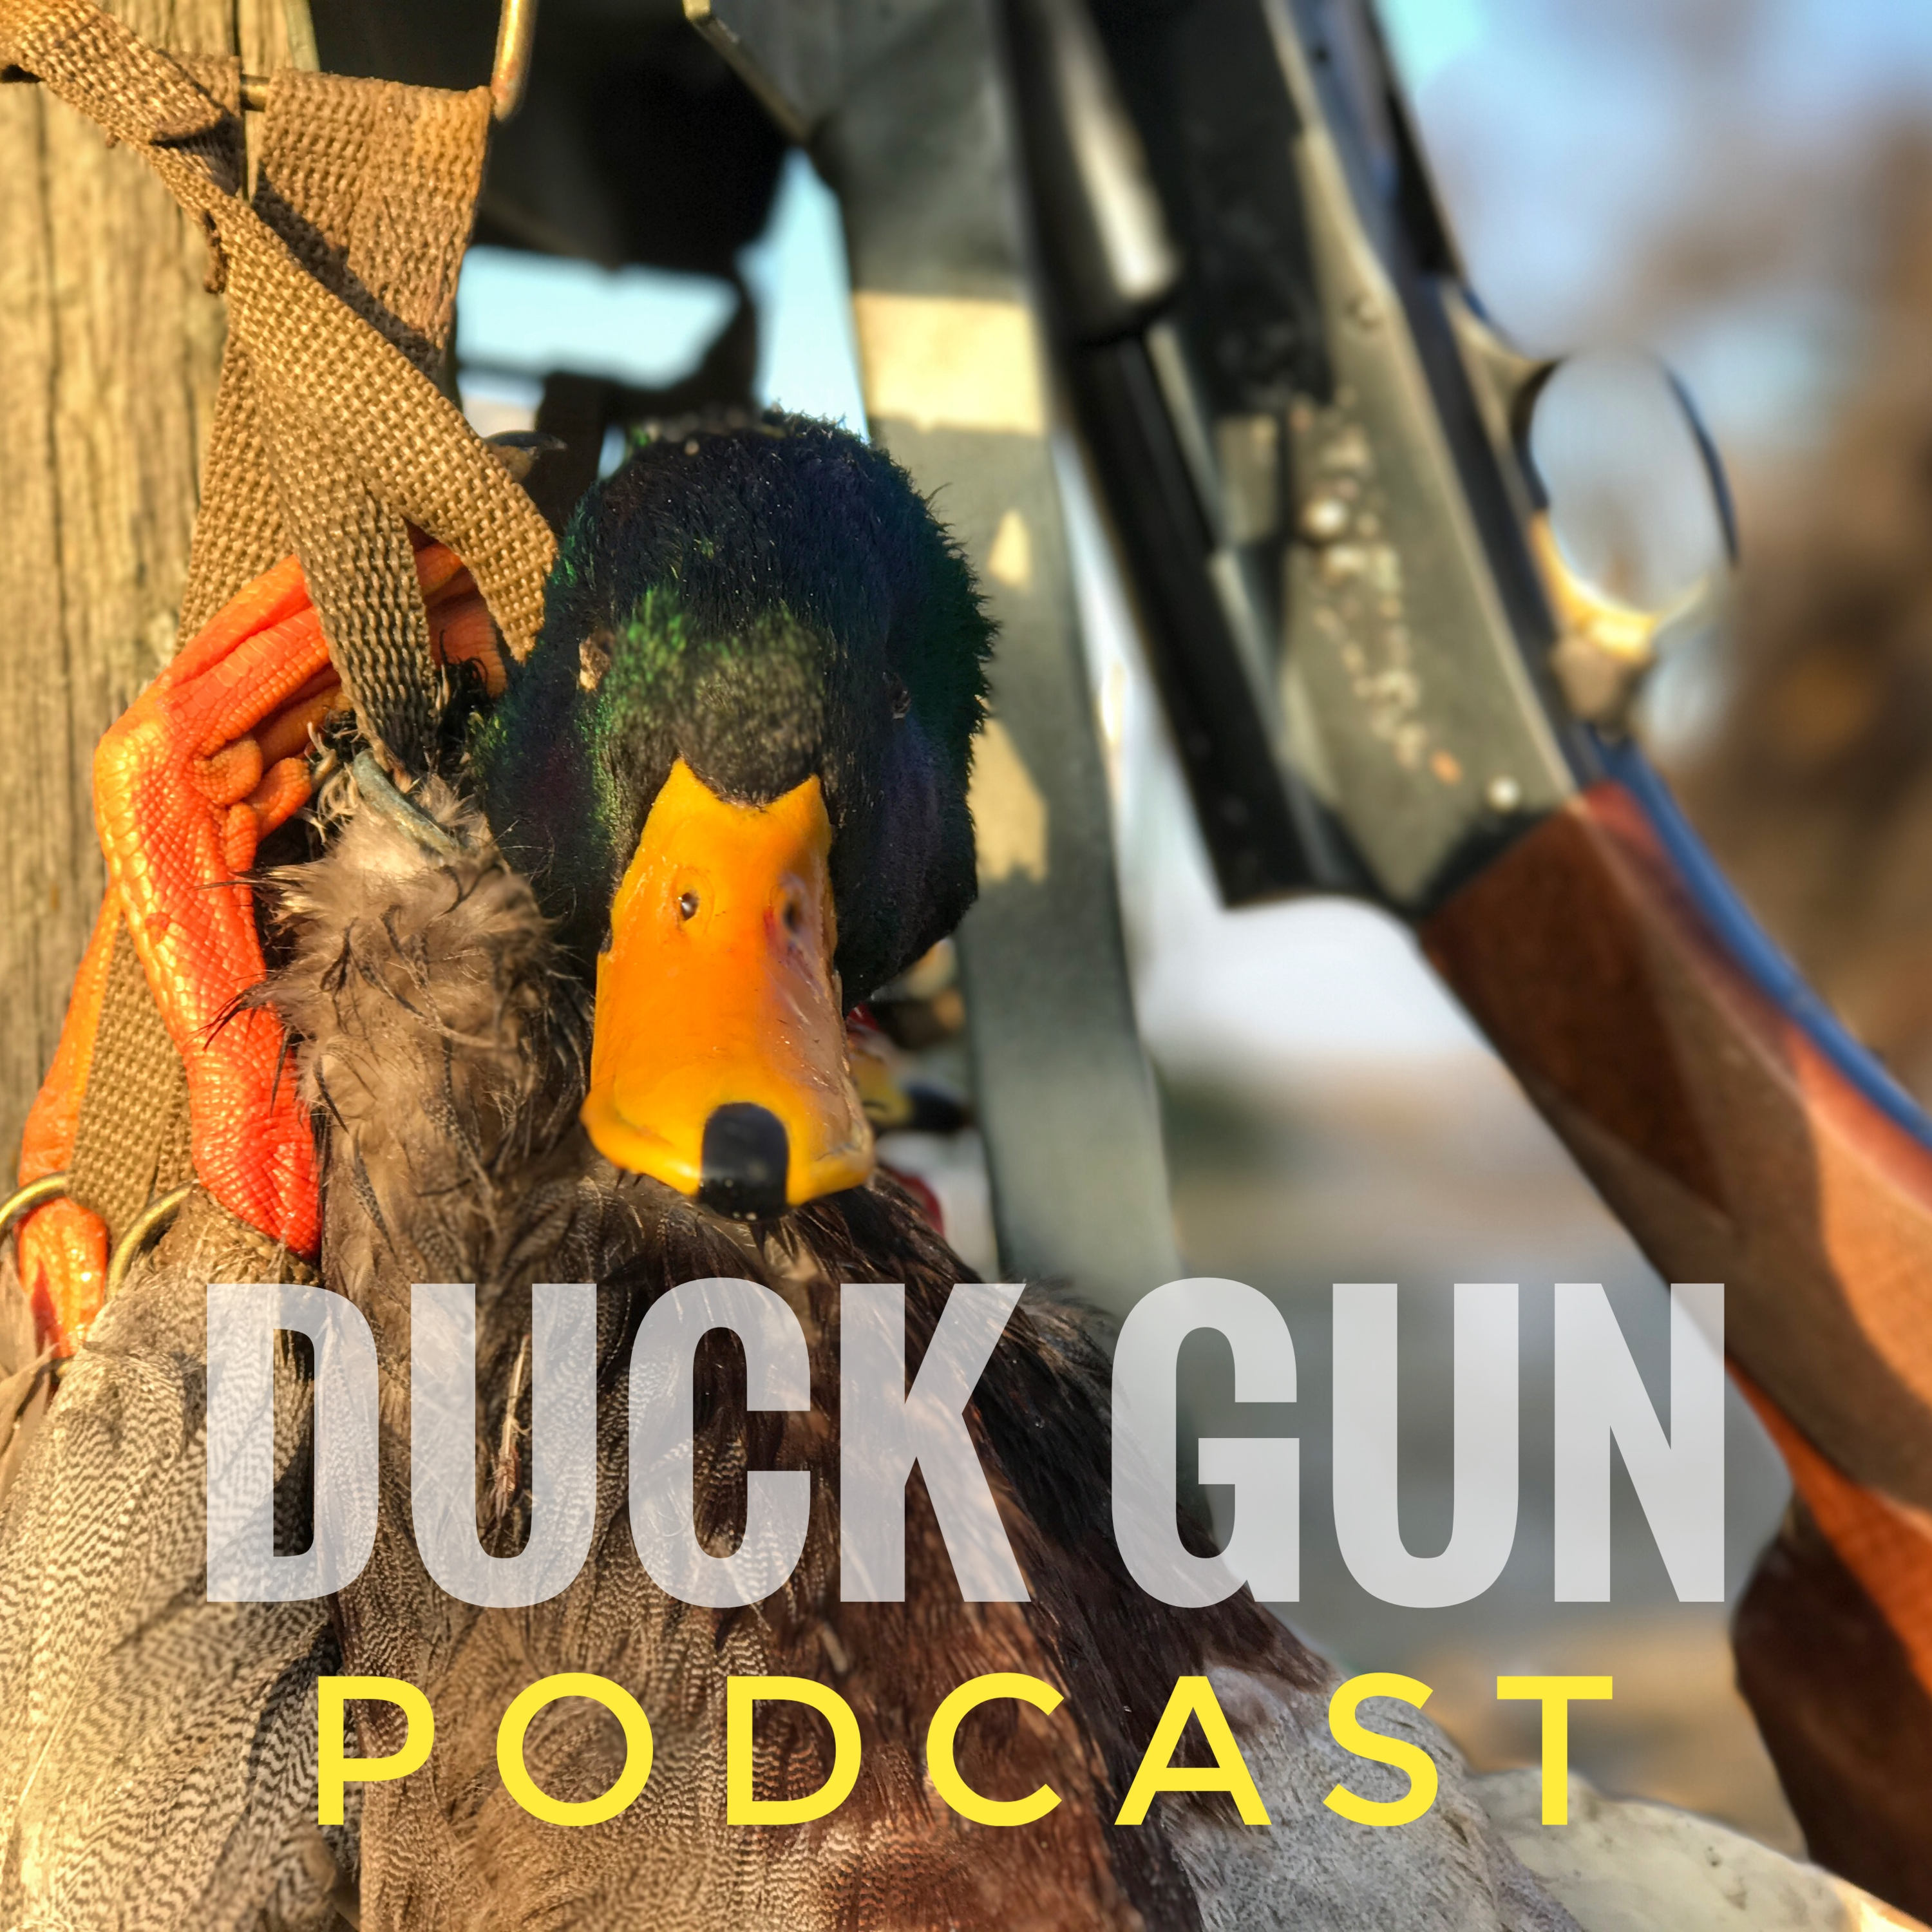 Everything You NEED to know to DUCK HUNT! - You ask, we answer! 2021